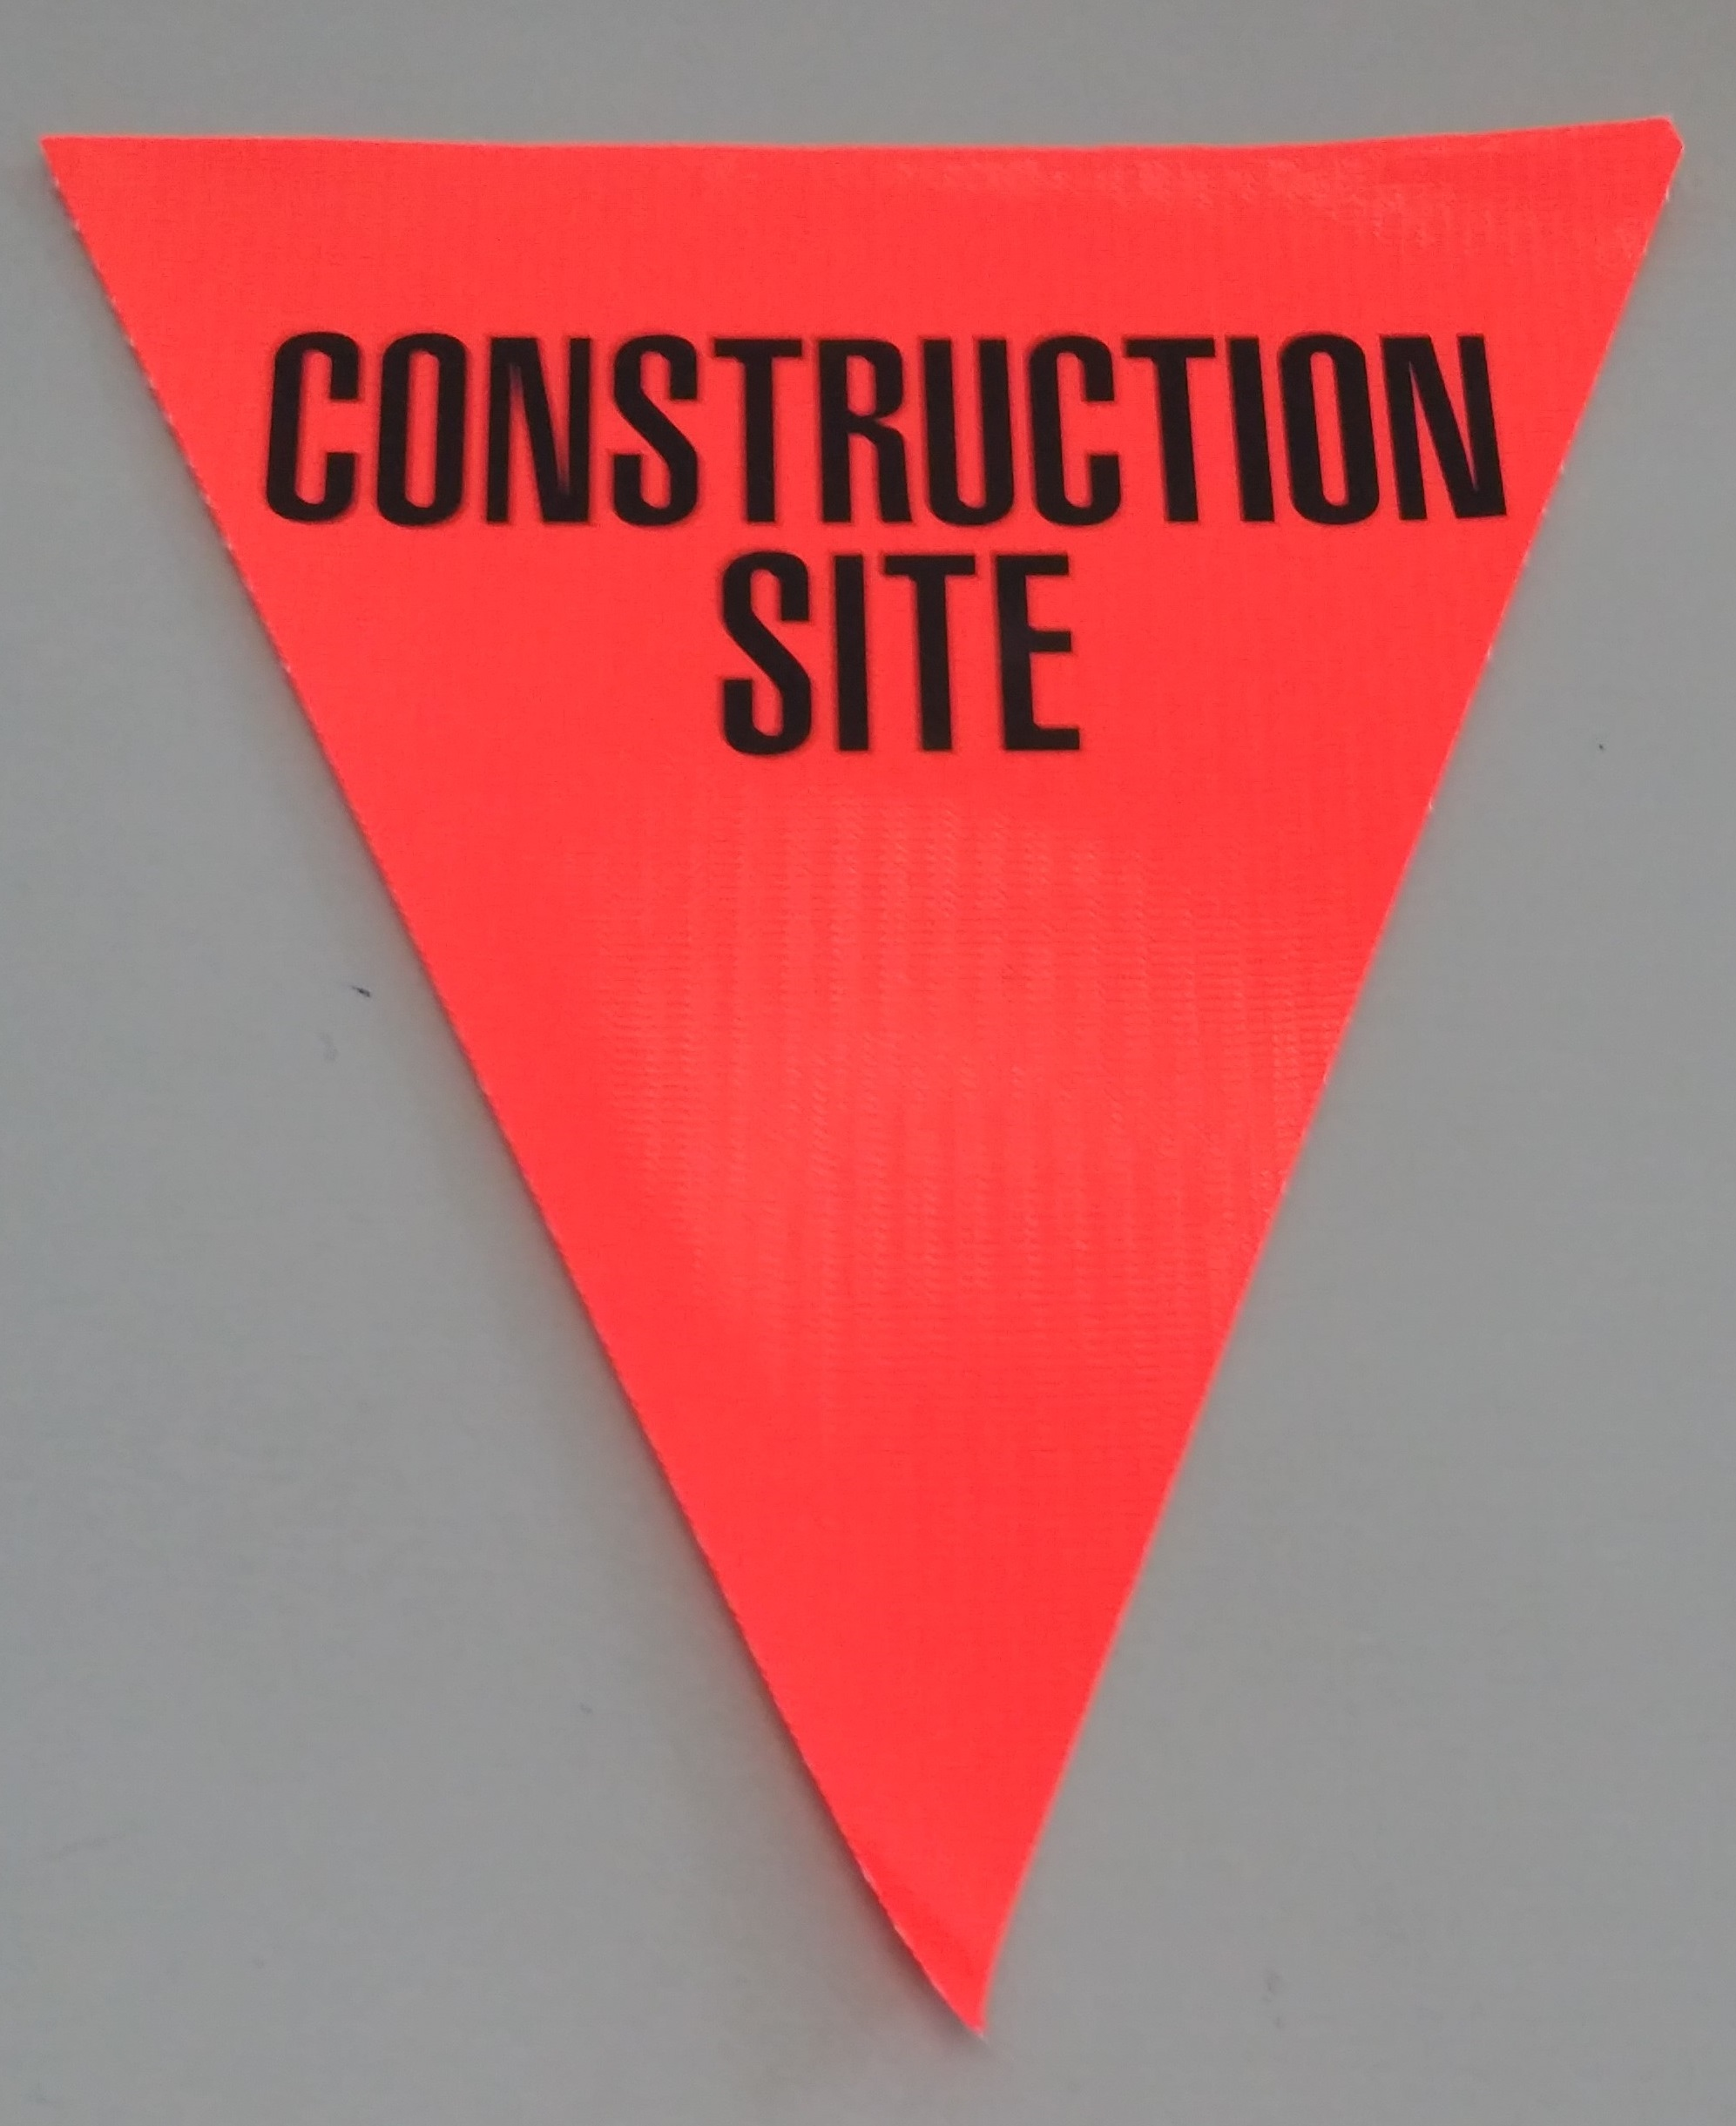 Construction Site (orange)